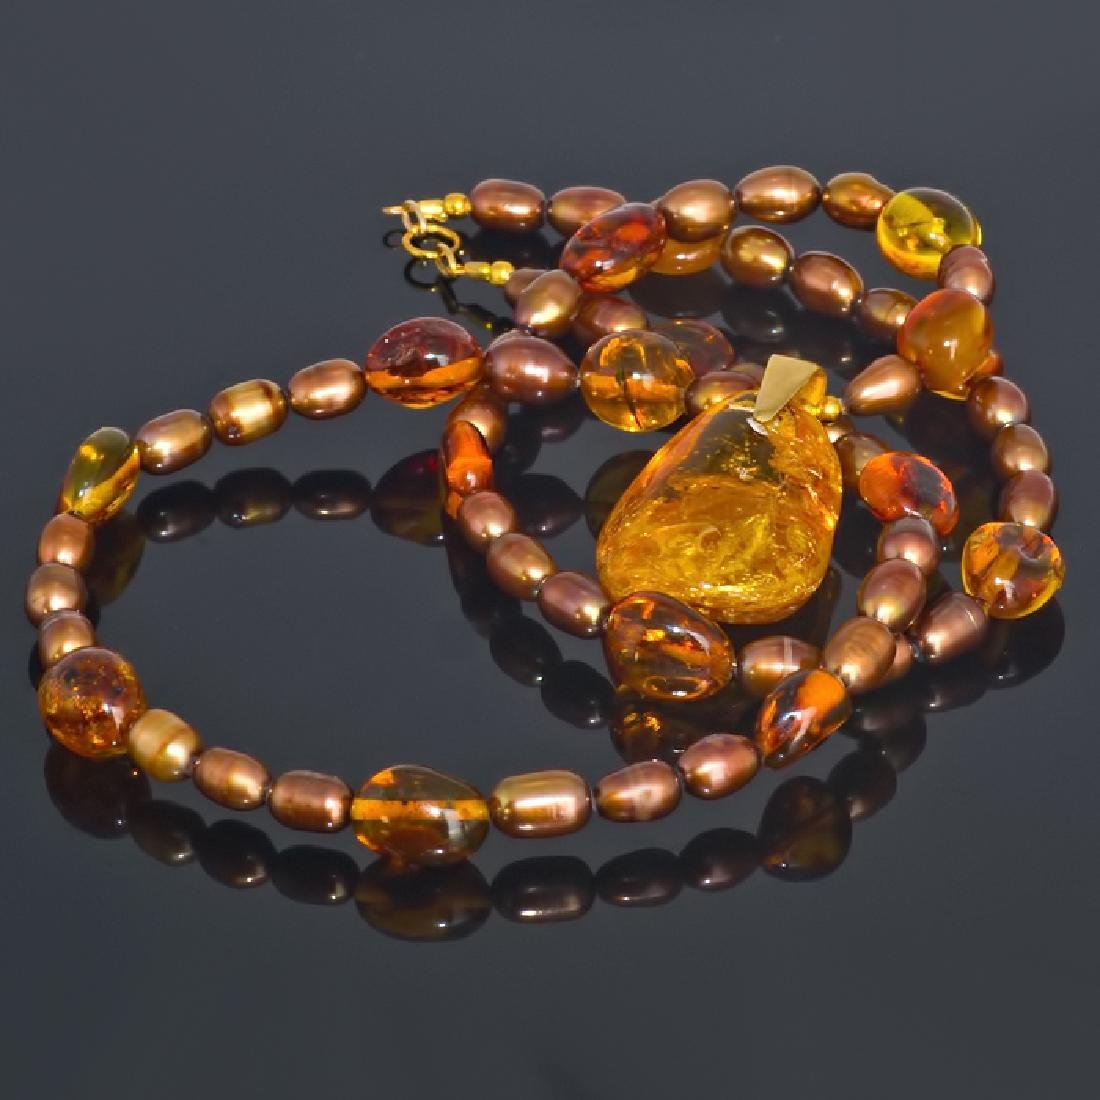 Golden Bronze Pearl and Amber necklace with Amber - 4